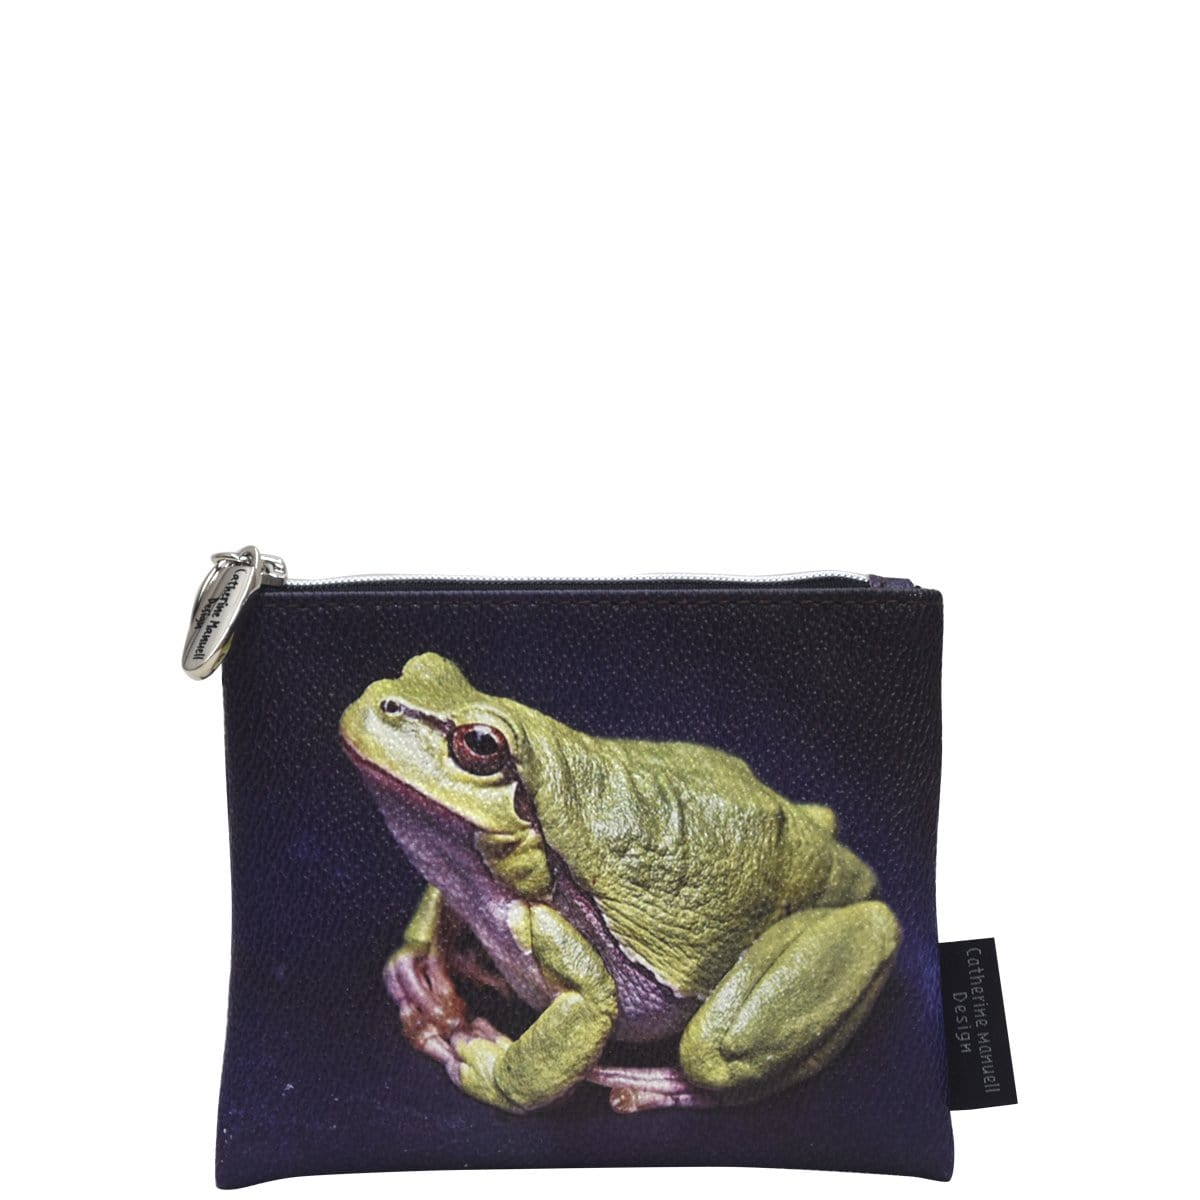 Everyday Purse - Frog